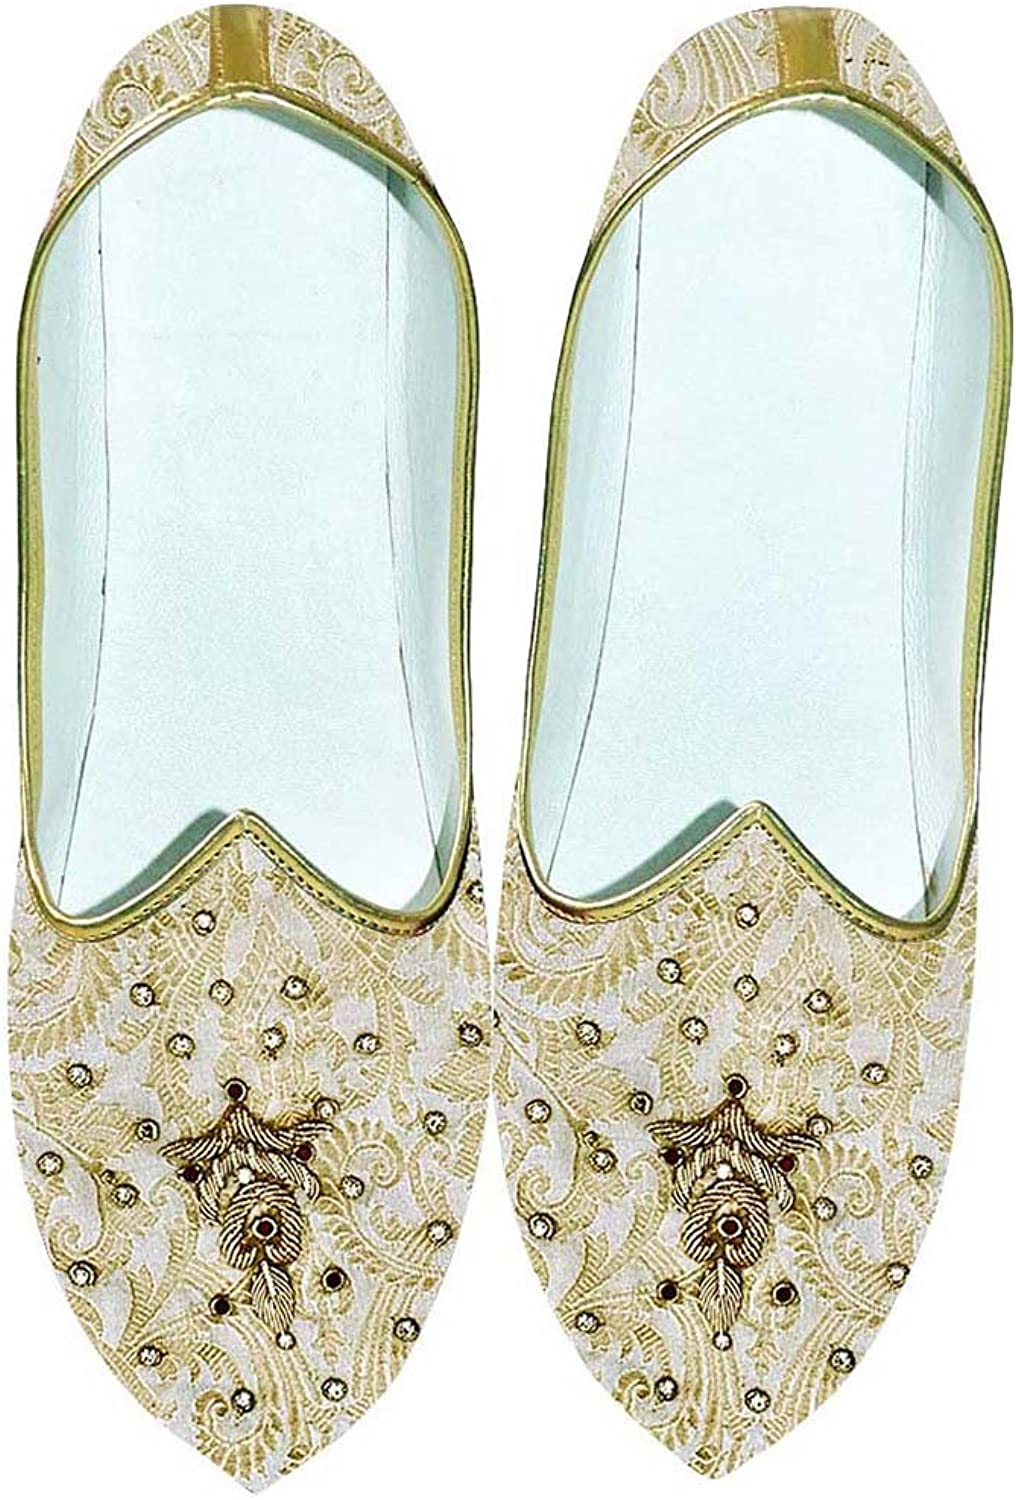 INMONARCH Mens Cream and golden Wedding shoes Embroidered MJ0707